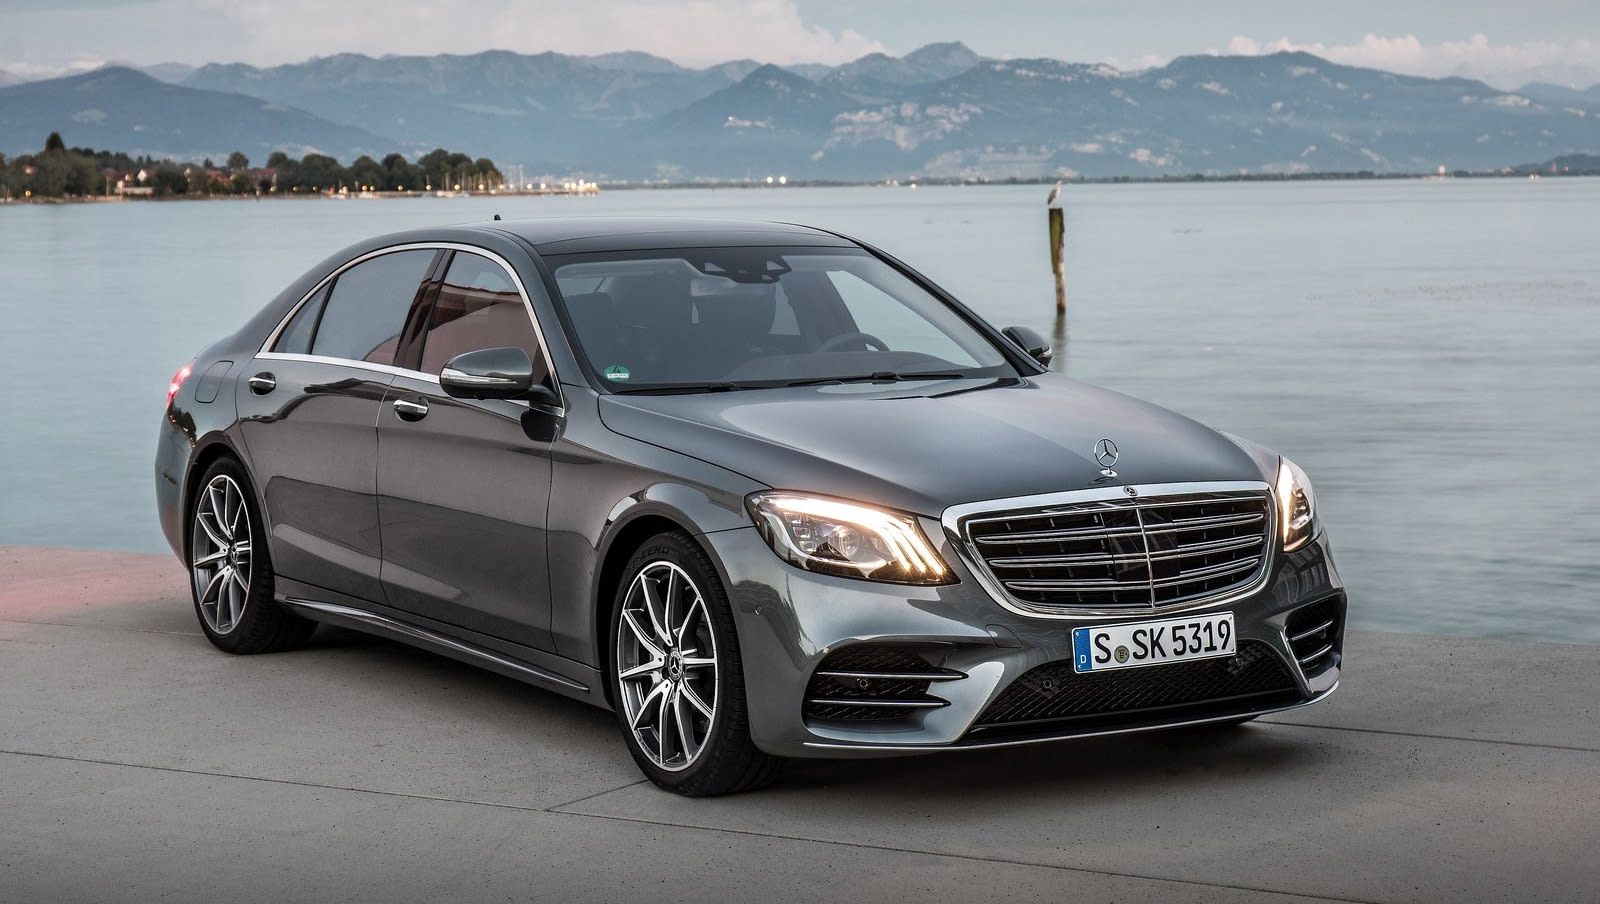 Mercedes benz s350d 2018 review snapshot carsguide for Mercedes benz s 350